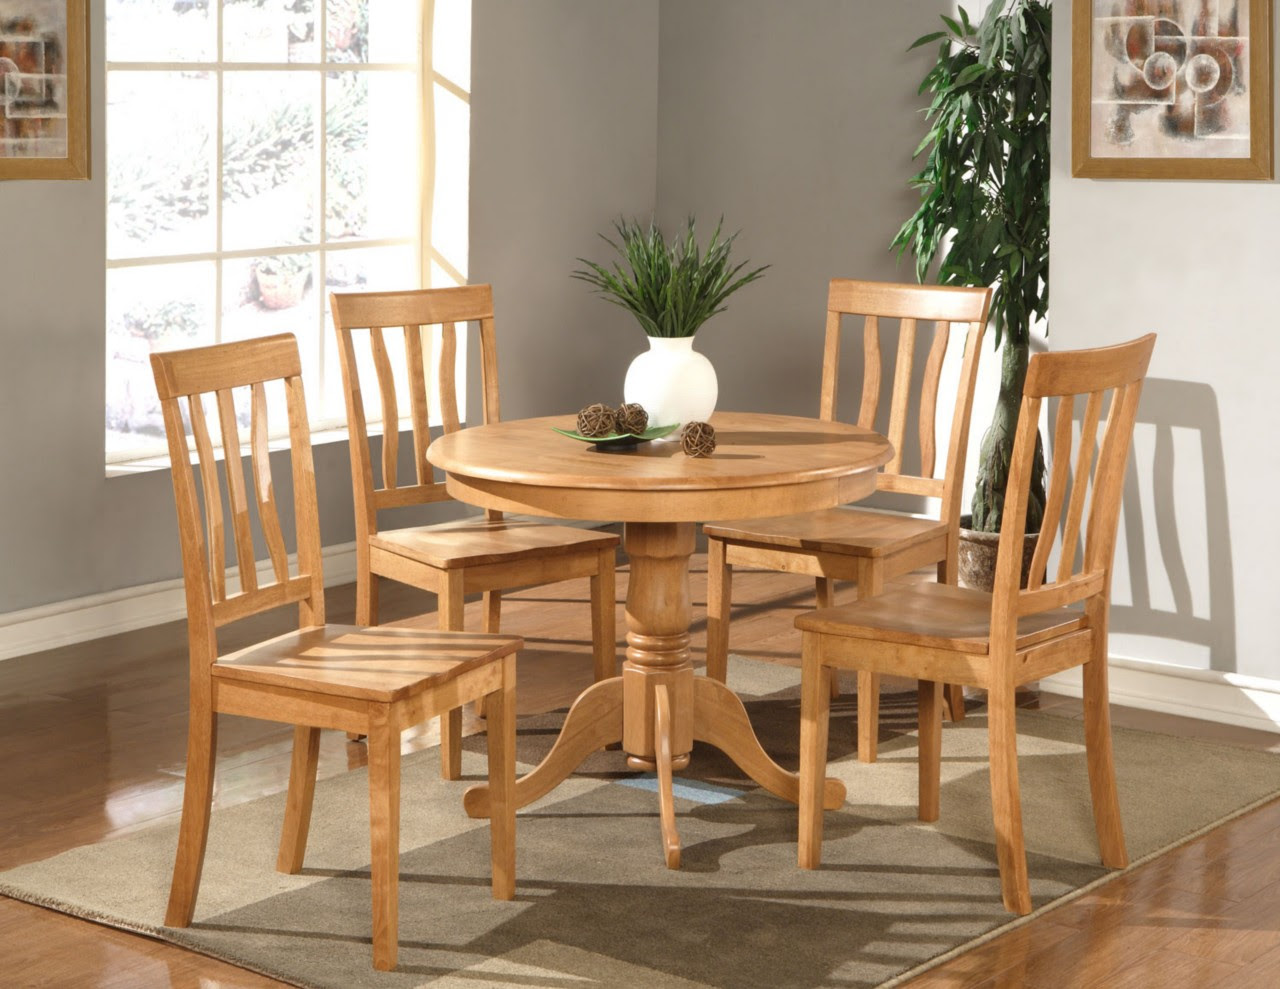 Oak Wood Kitchen Table And Chairs